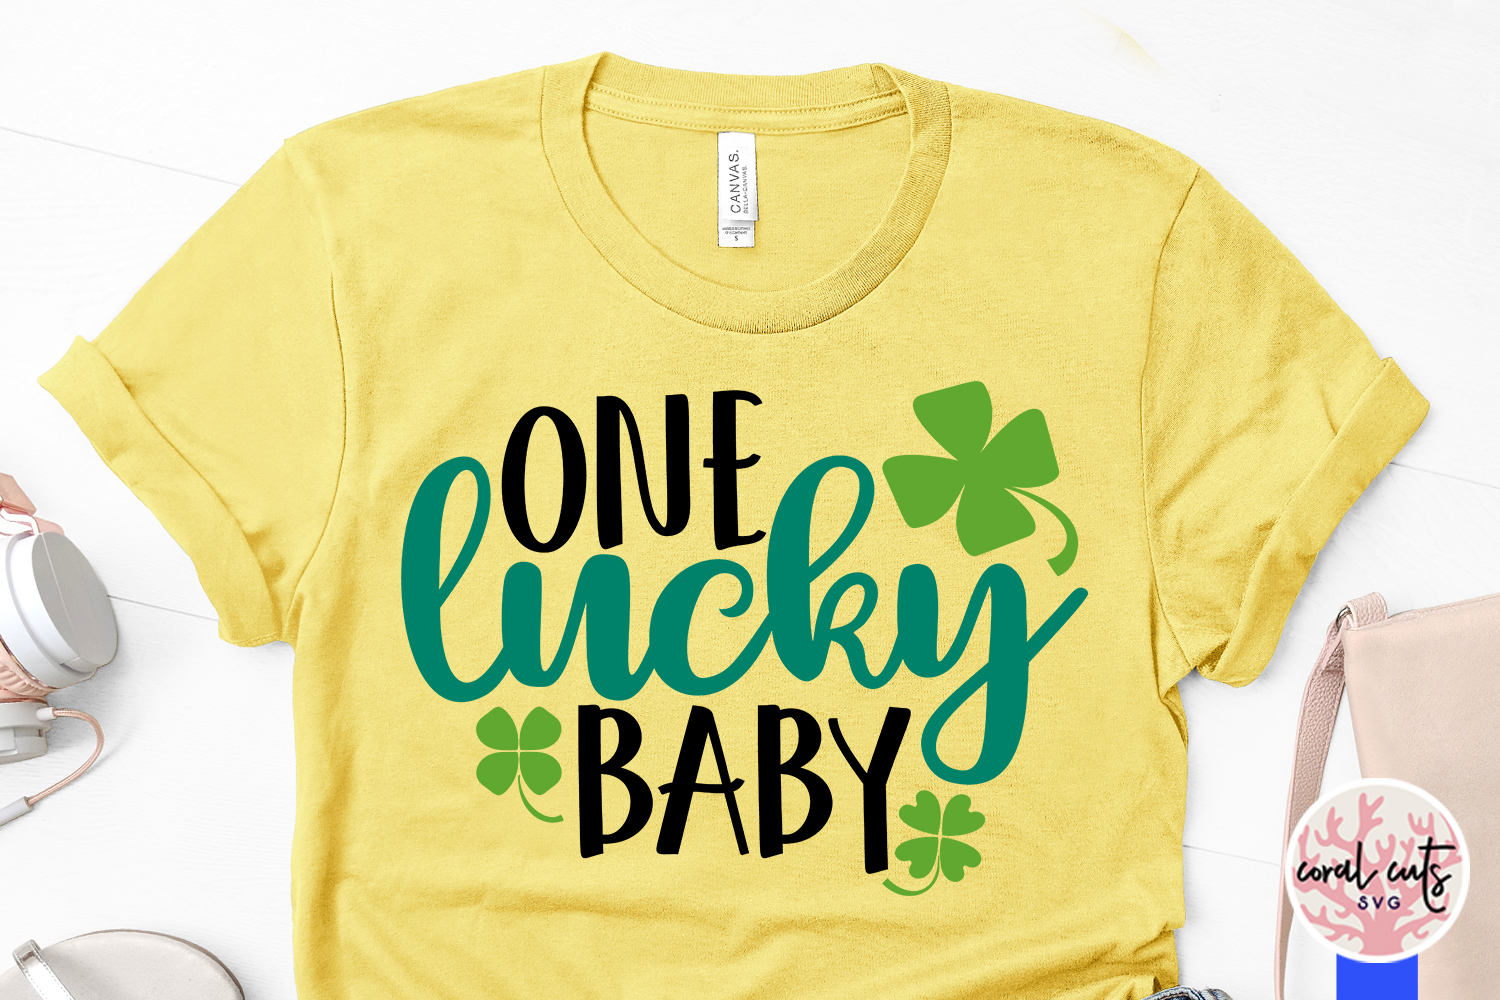 One lucky baby - St. Patrick's Day SVG EPS DXF PNG example image 3